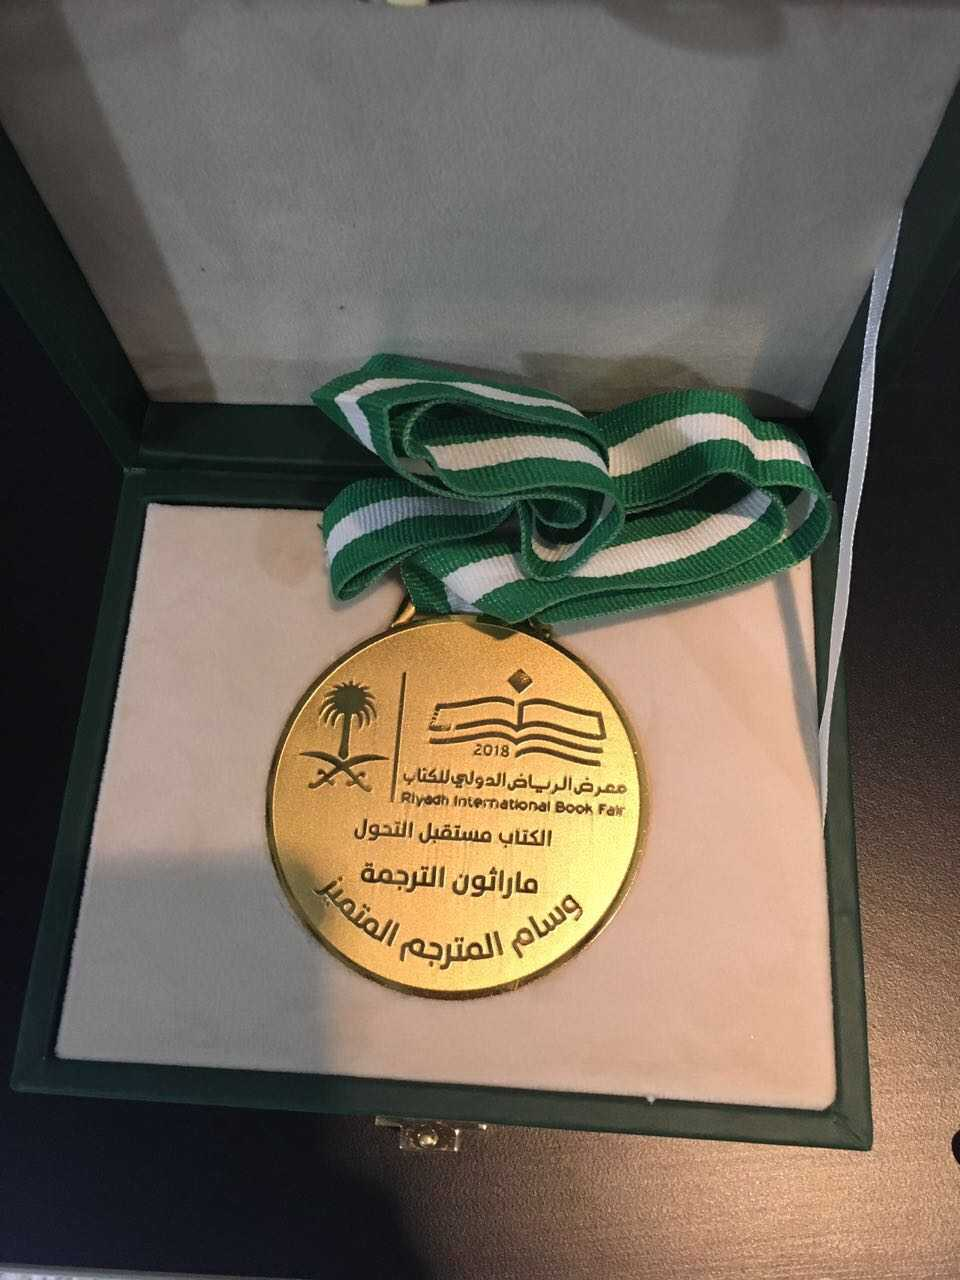 KSU Students Receive Medal of Excellence in the Translation Marathon